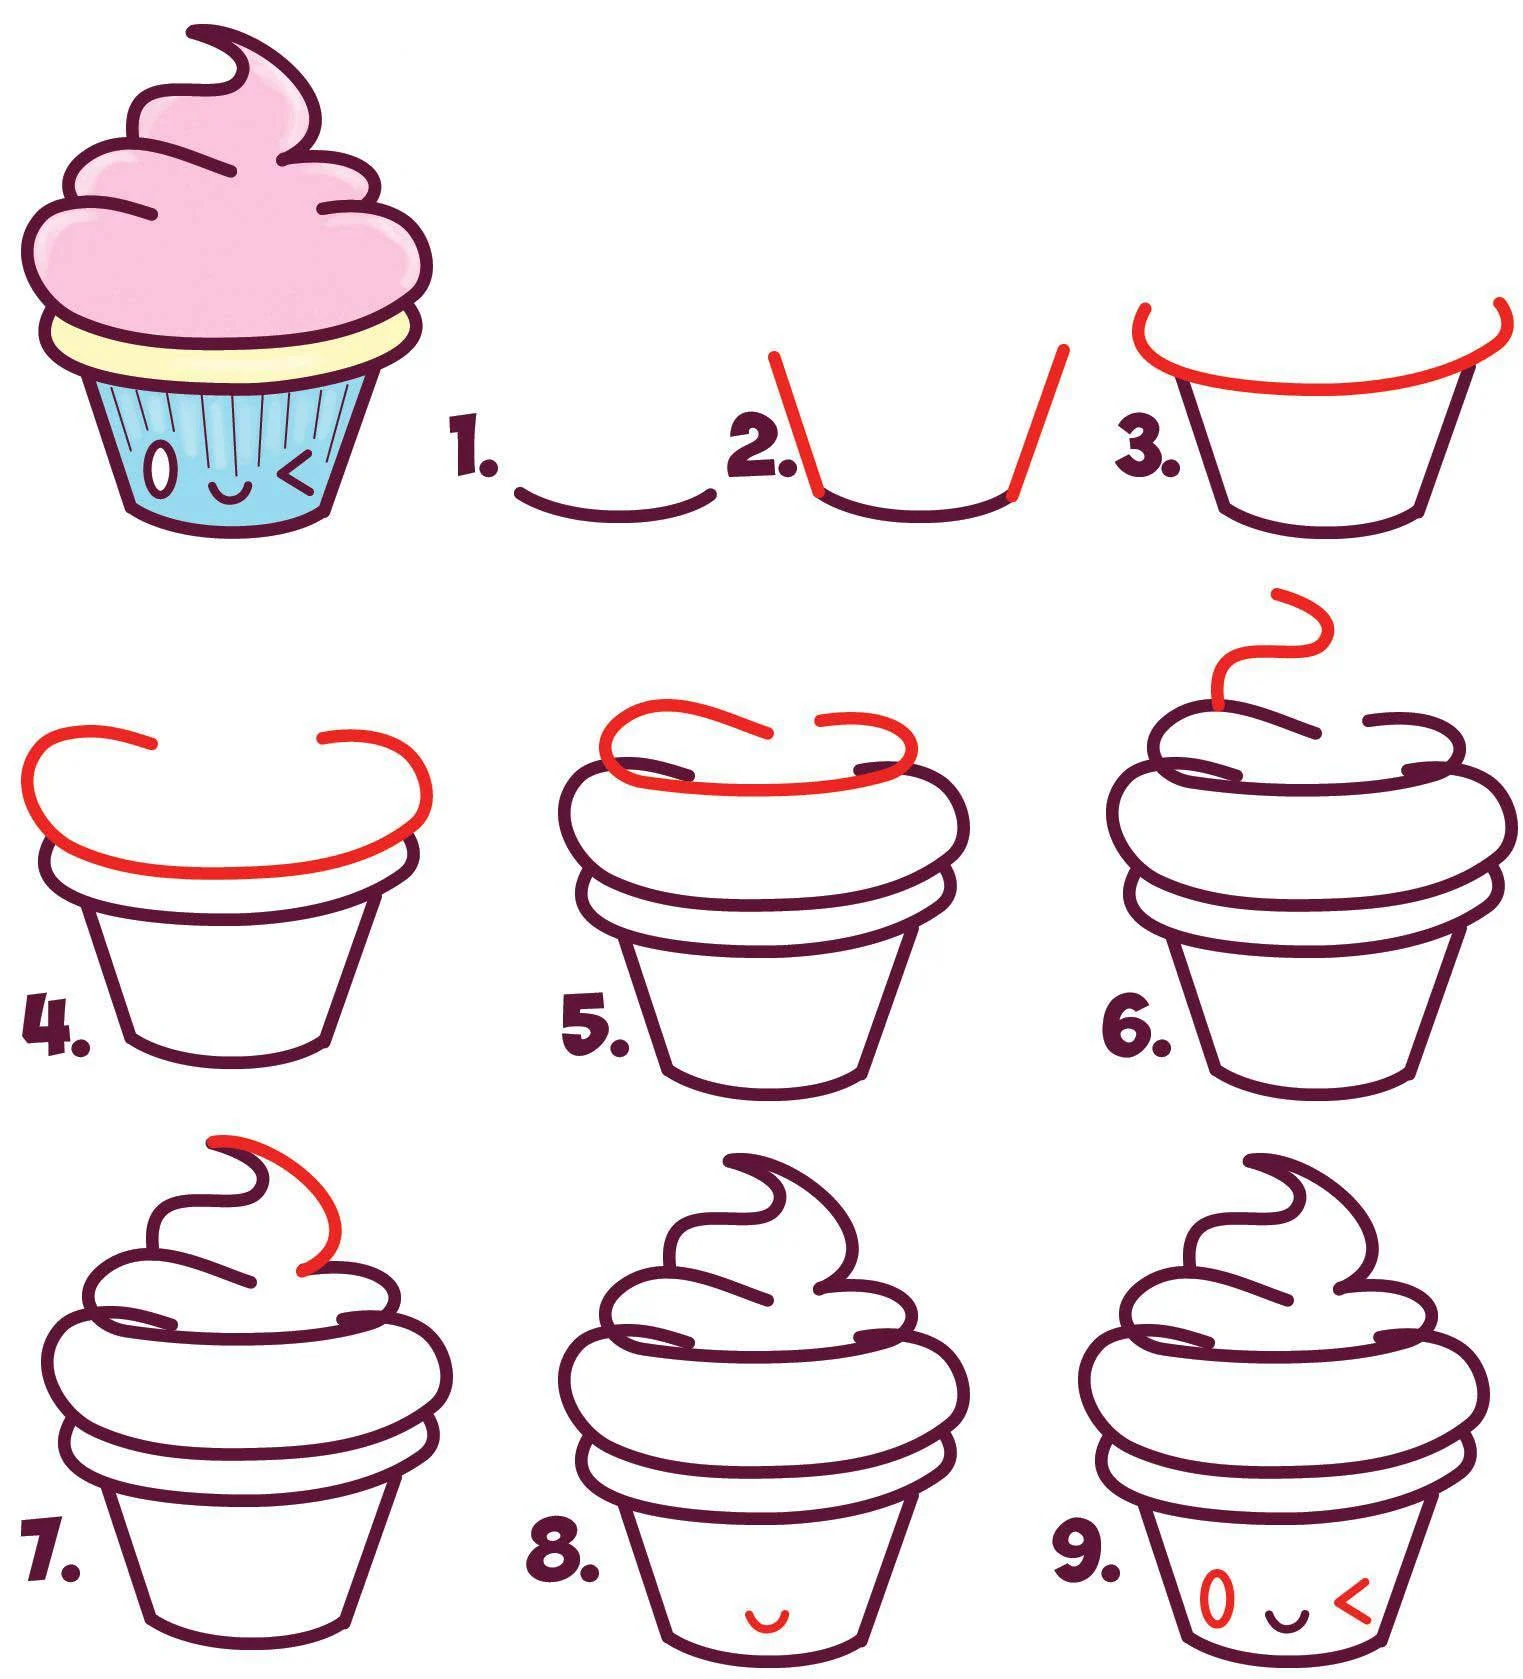 Cute easy cupcake drawing for kids